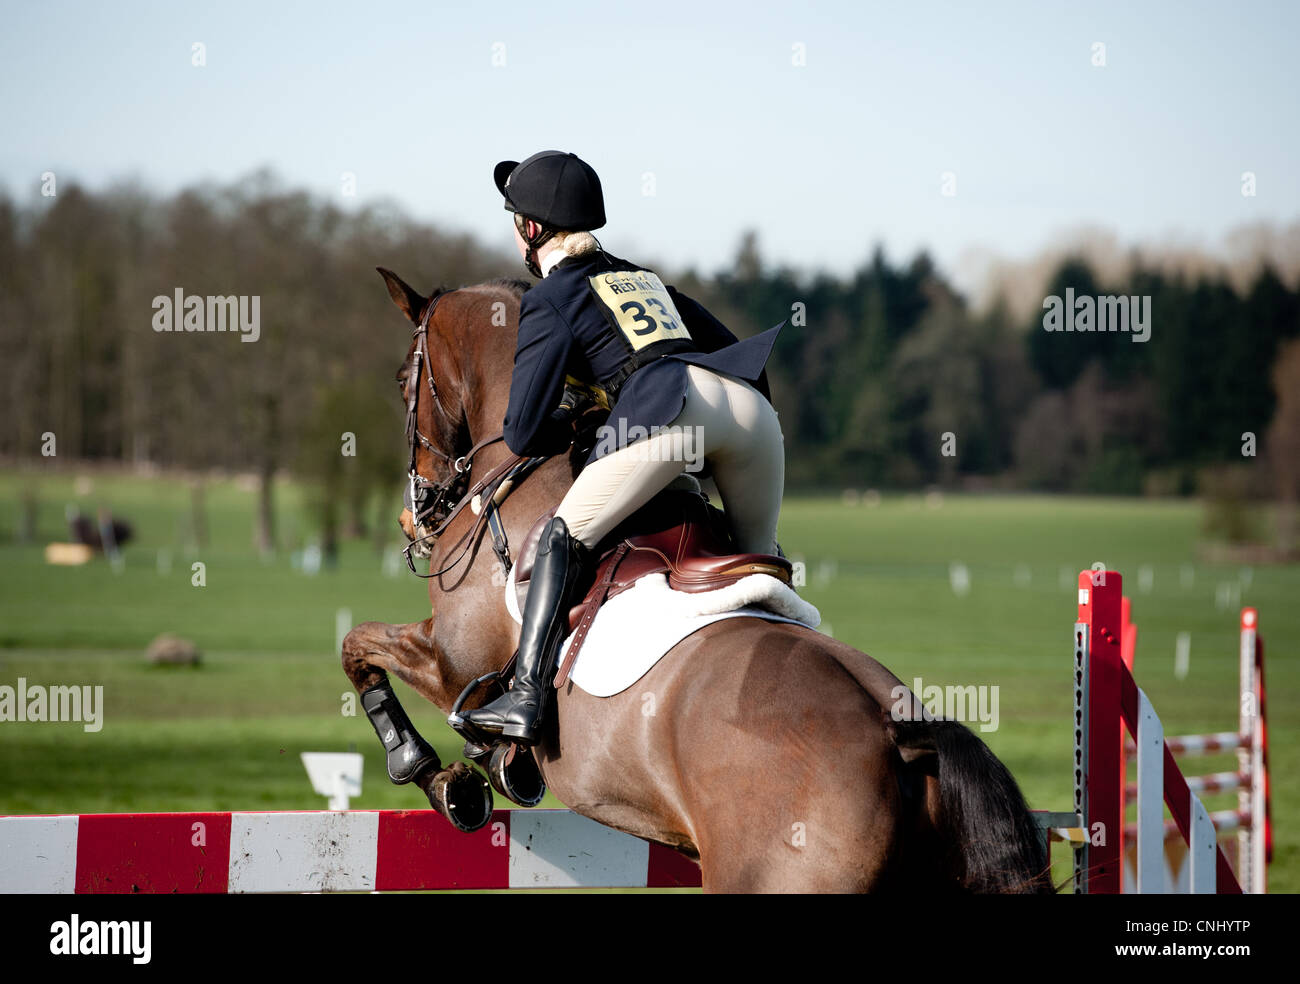 Horse Show Jumping Photo Stock